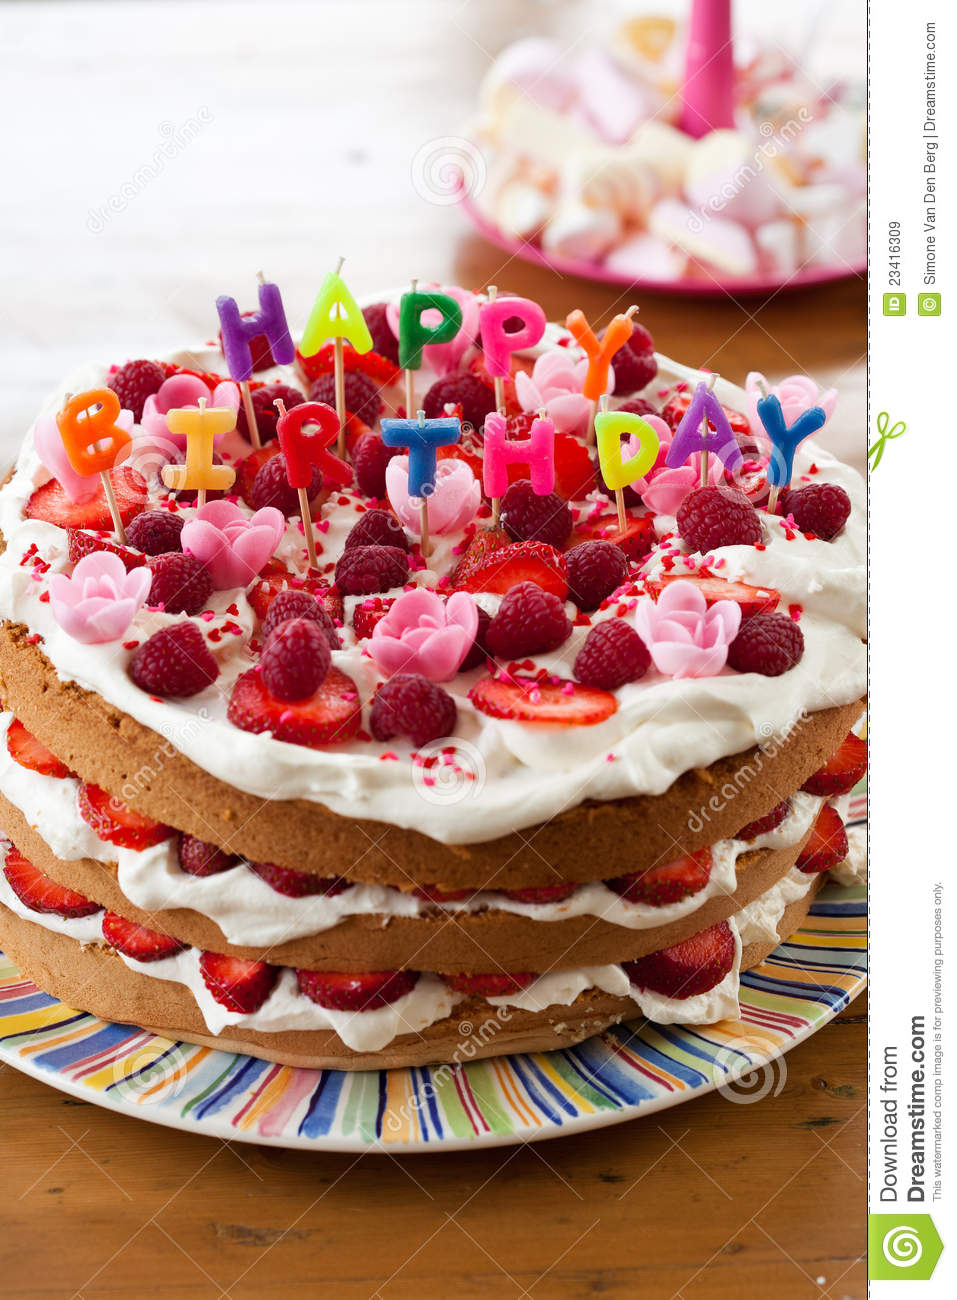 Birthday Cake Picture Free Download Happy Birthday Cake Stock Image Image Of Obese Decoration 23416309